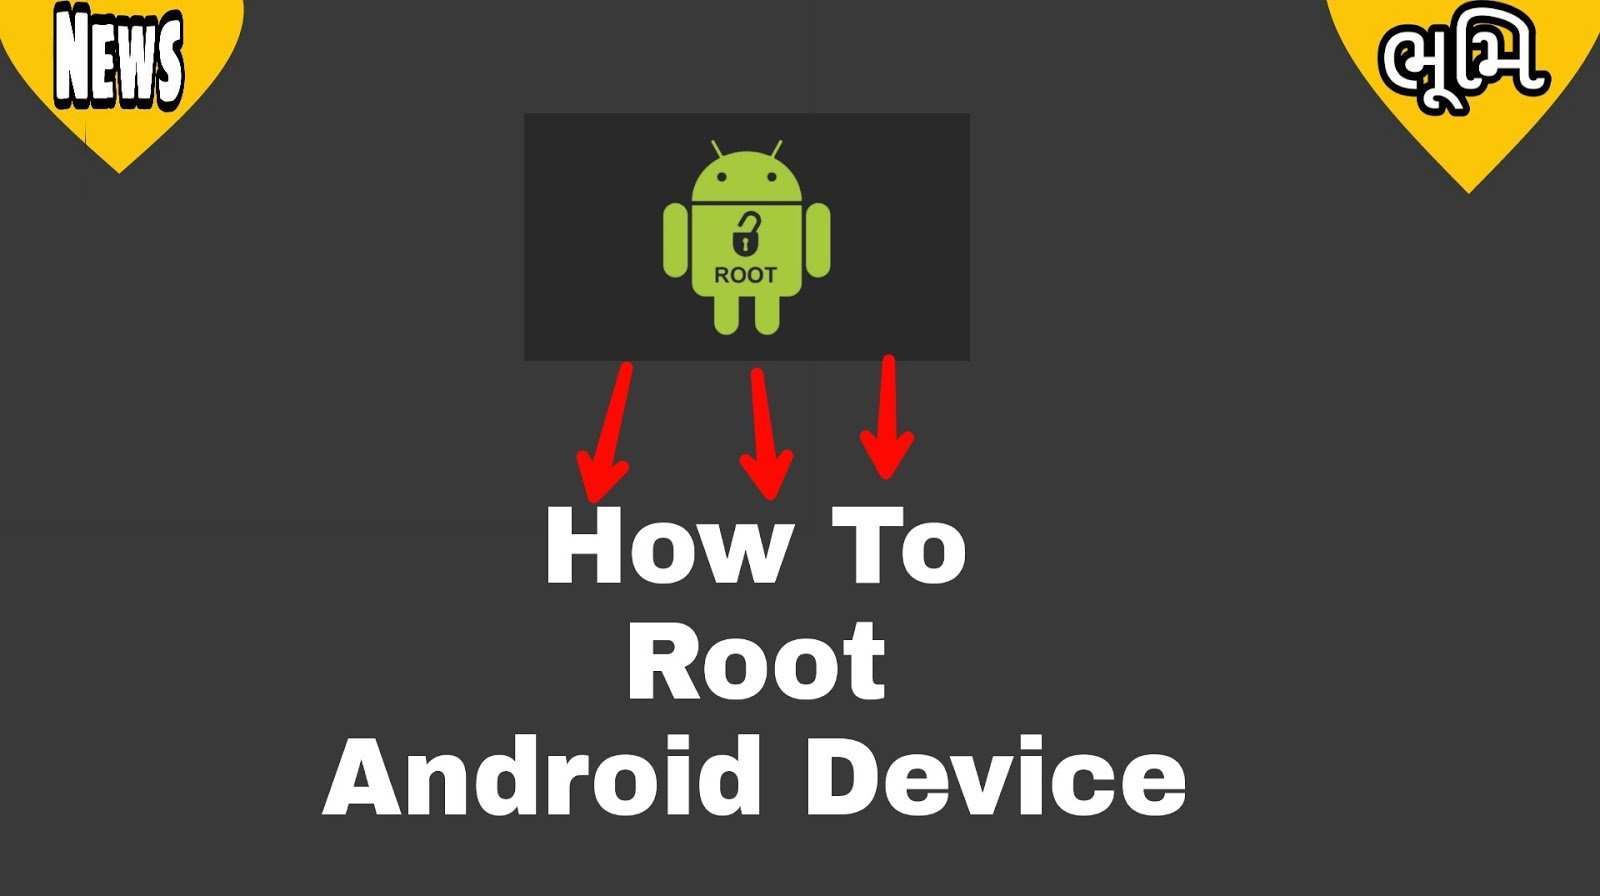 How to Root Android Device Without PC - News Bhumi